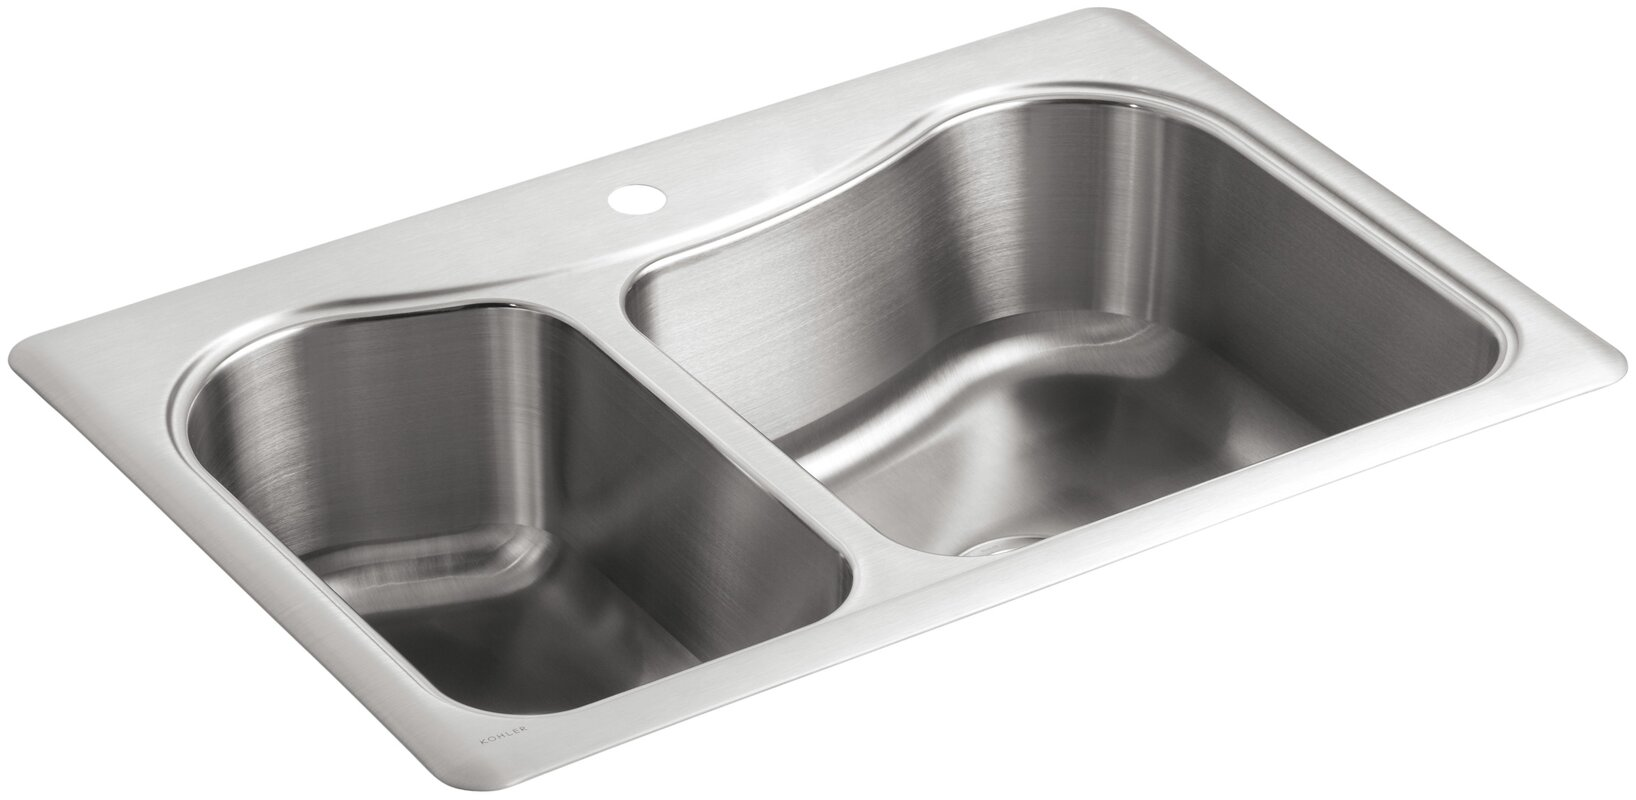 Single Or Double Bowl Kitchen Sink K 3361 1 na kohler staccato 33 x 22 x 8 516 top mount large staccato 33 x 22 x 8 516 top mount workwithnaturefo